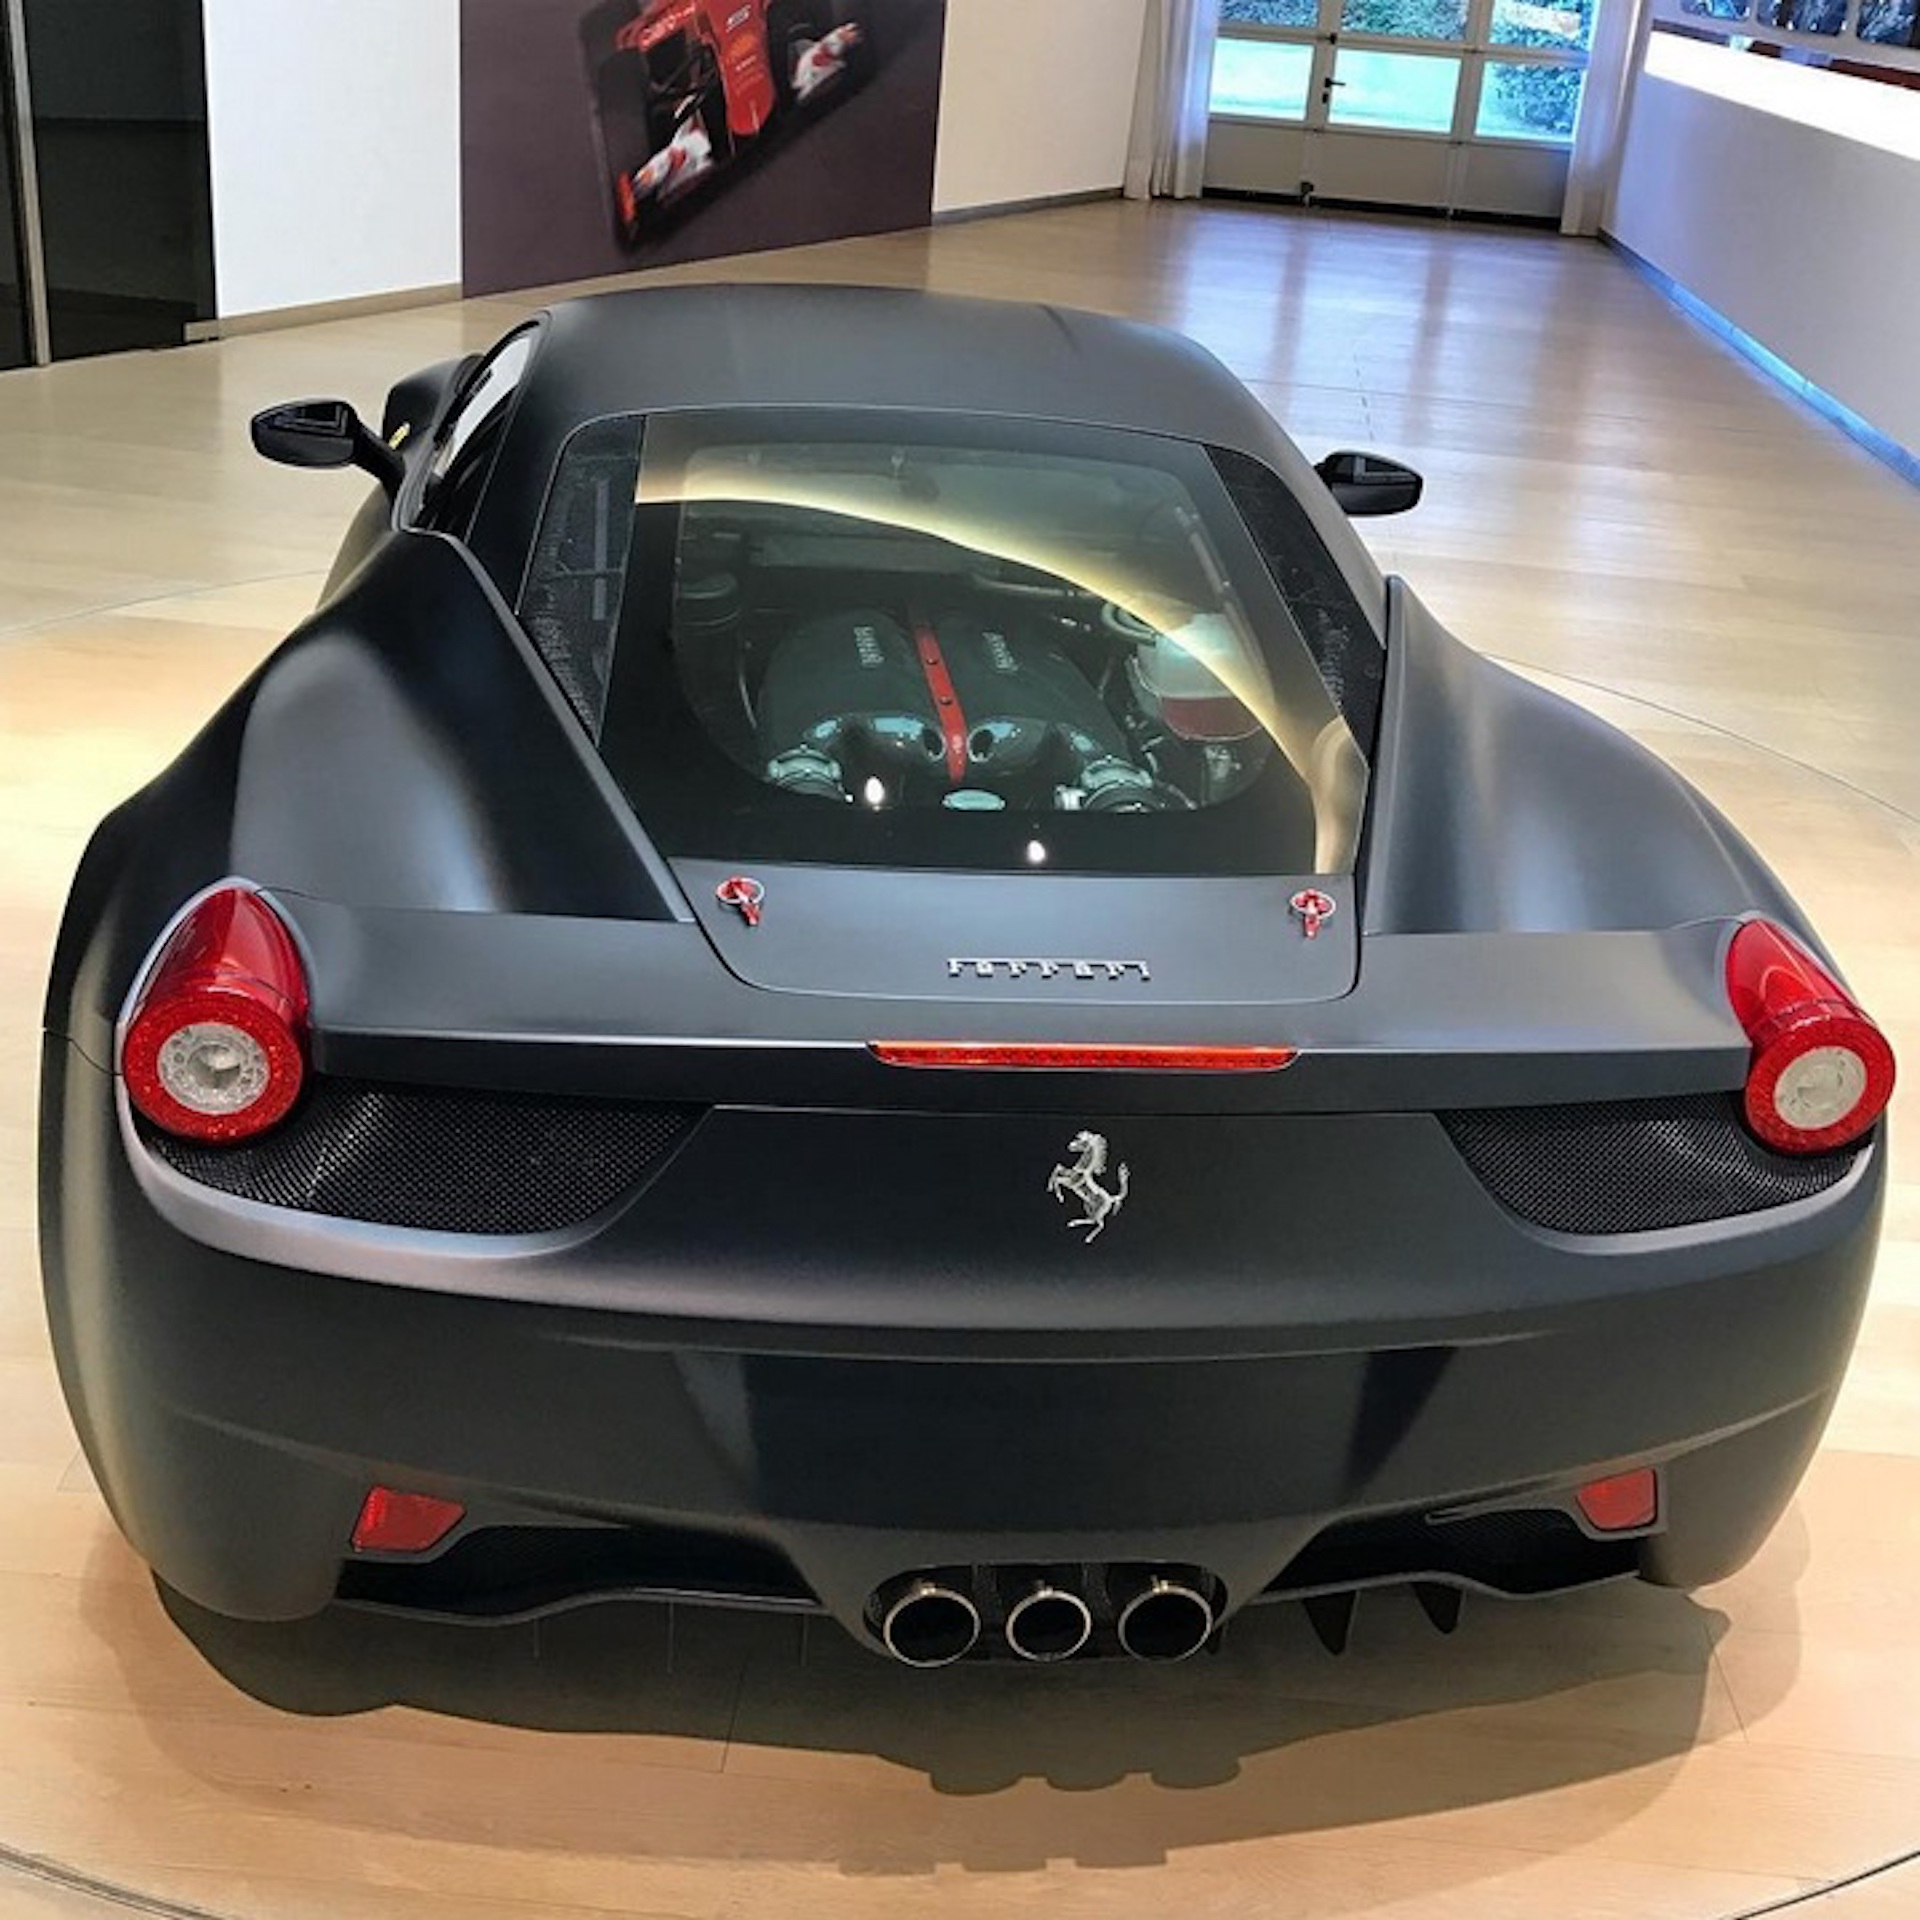 Ferrari may have built a 458 Italia with a LaFerrari V-12